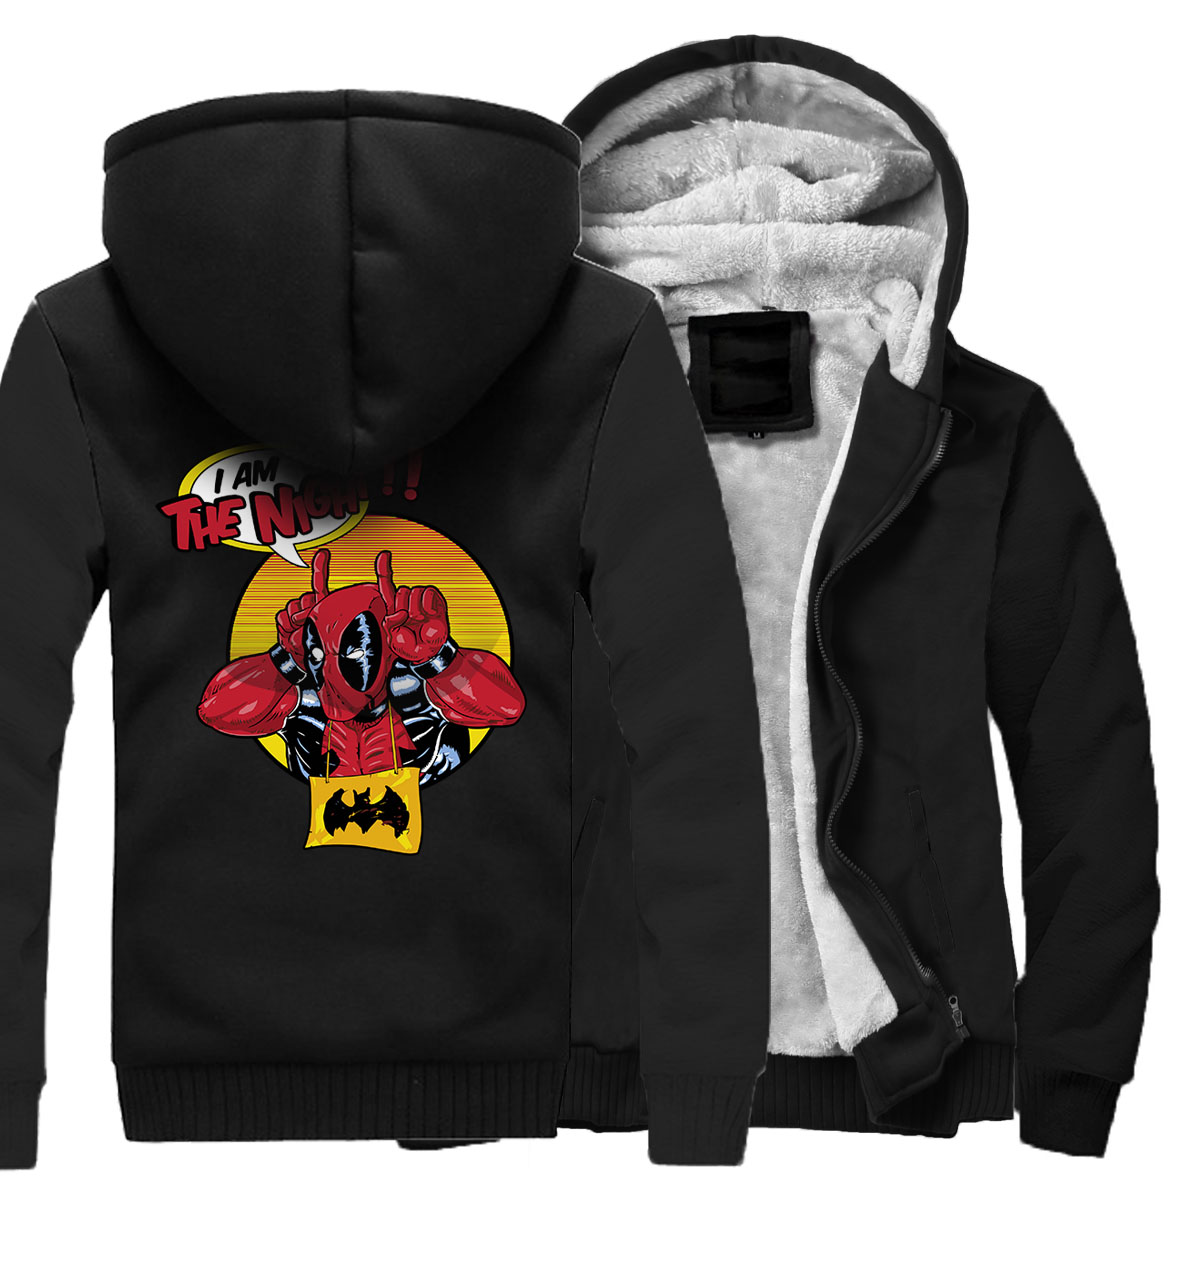 Fashion Jacket For Men 2018 Winter Autumn Thick Sweatshirt BATMAN DEADPOOL Funny Hoody Hip Hop Streetwear Men's Hoodies Jackets